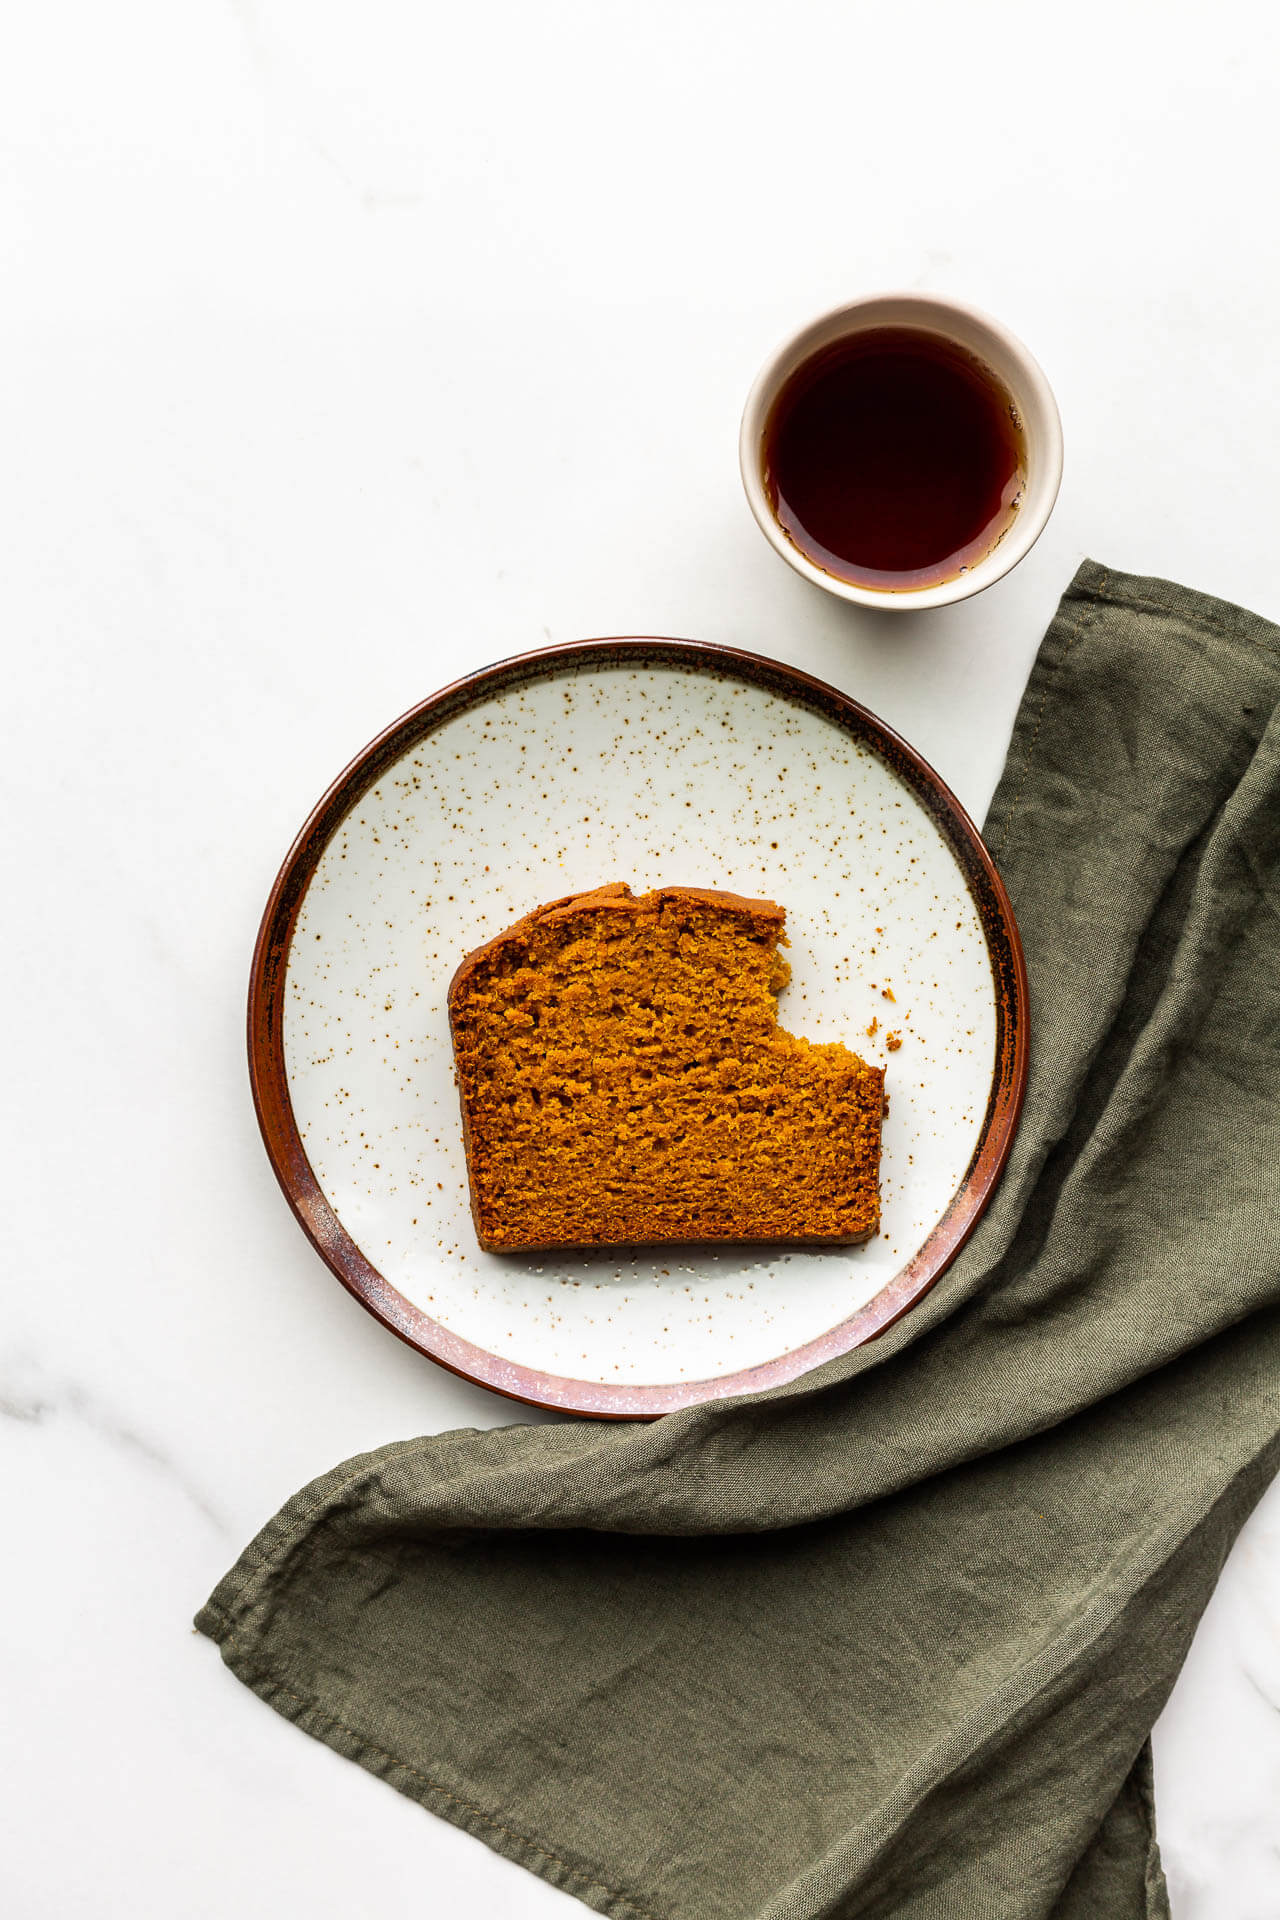 A slice of pumpkin spice bread with a bite taken out of it, with a green linen and a cup of tea on the side.